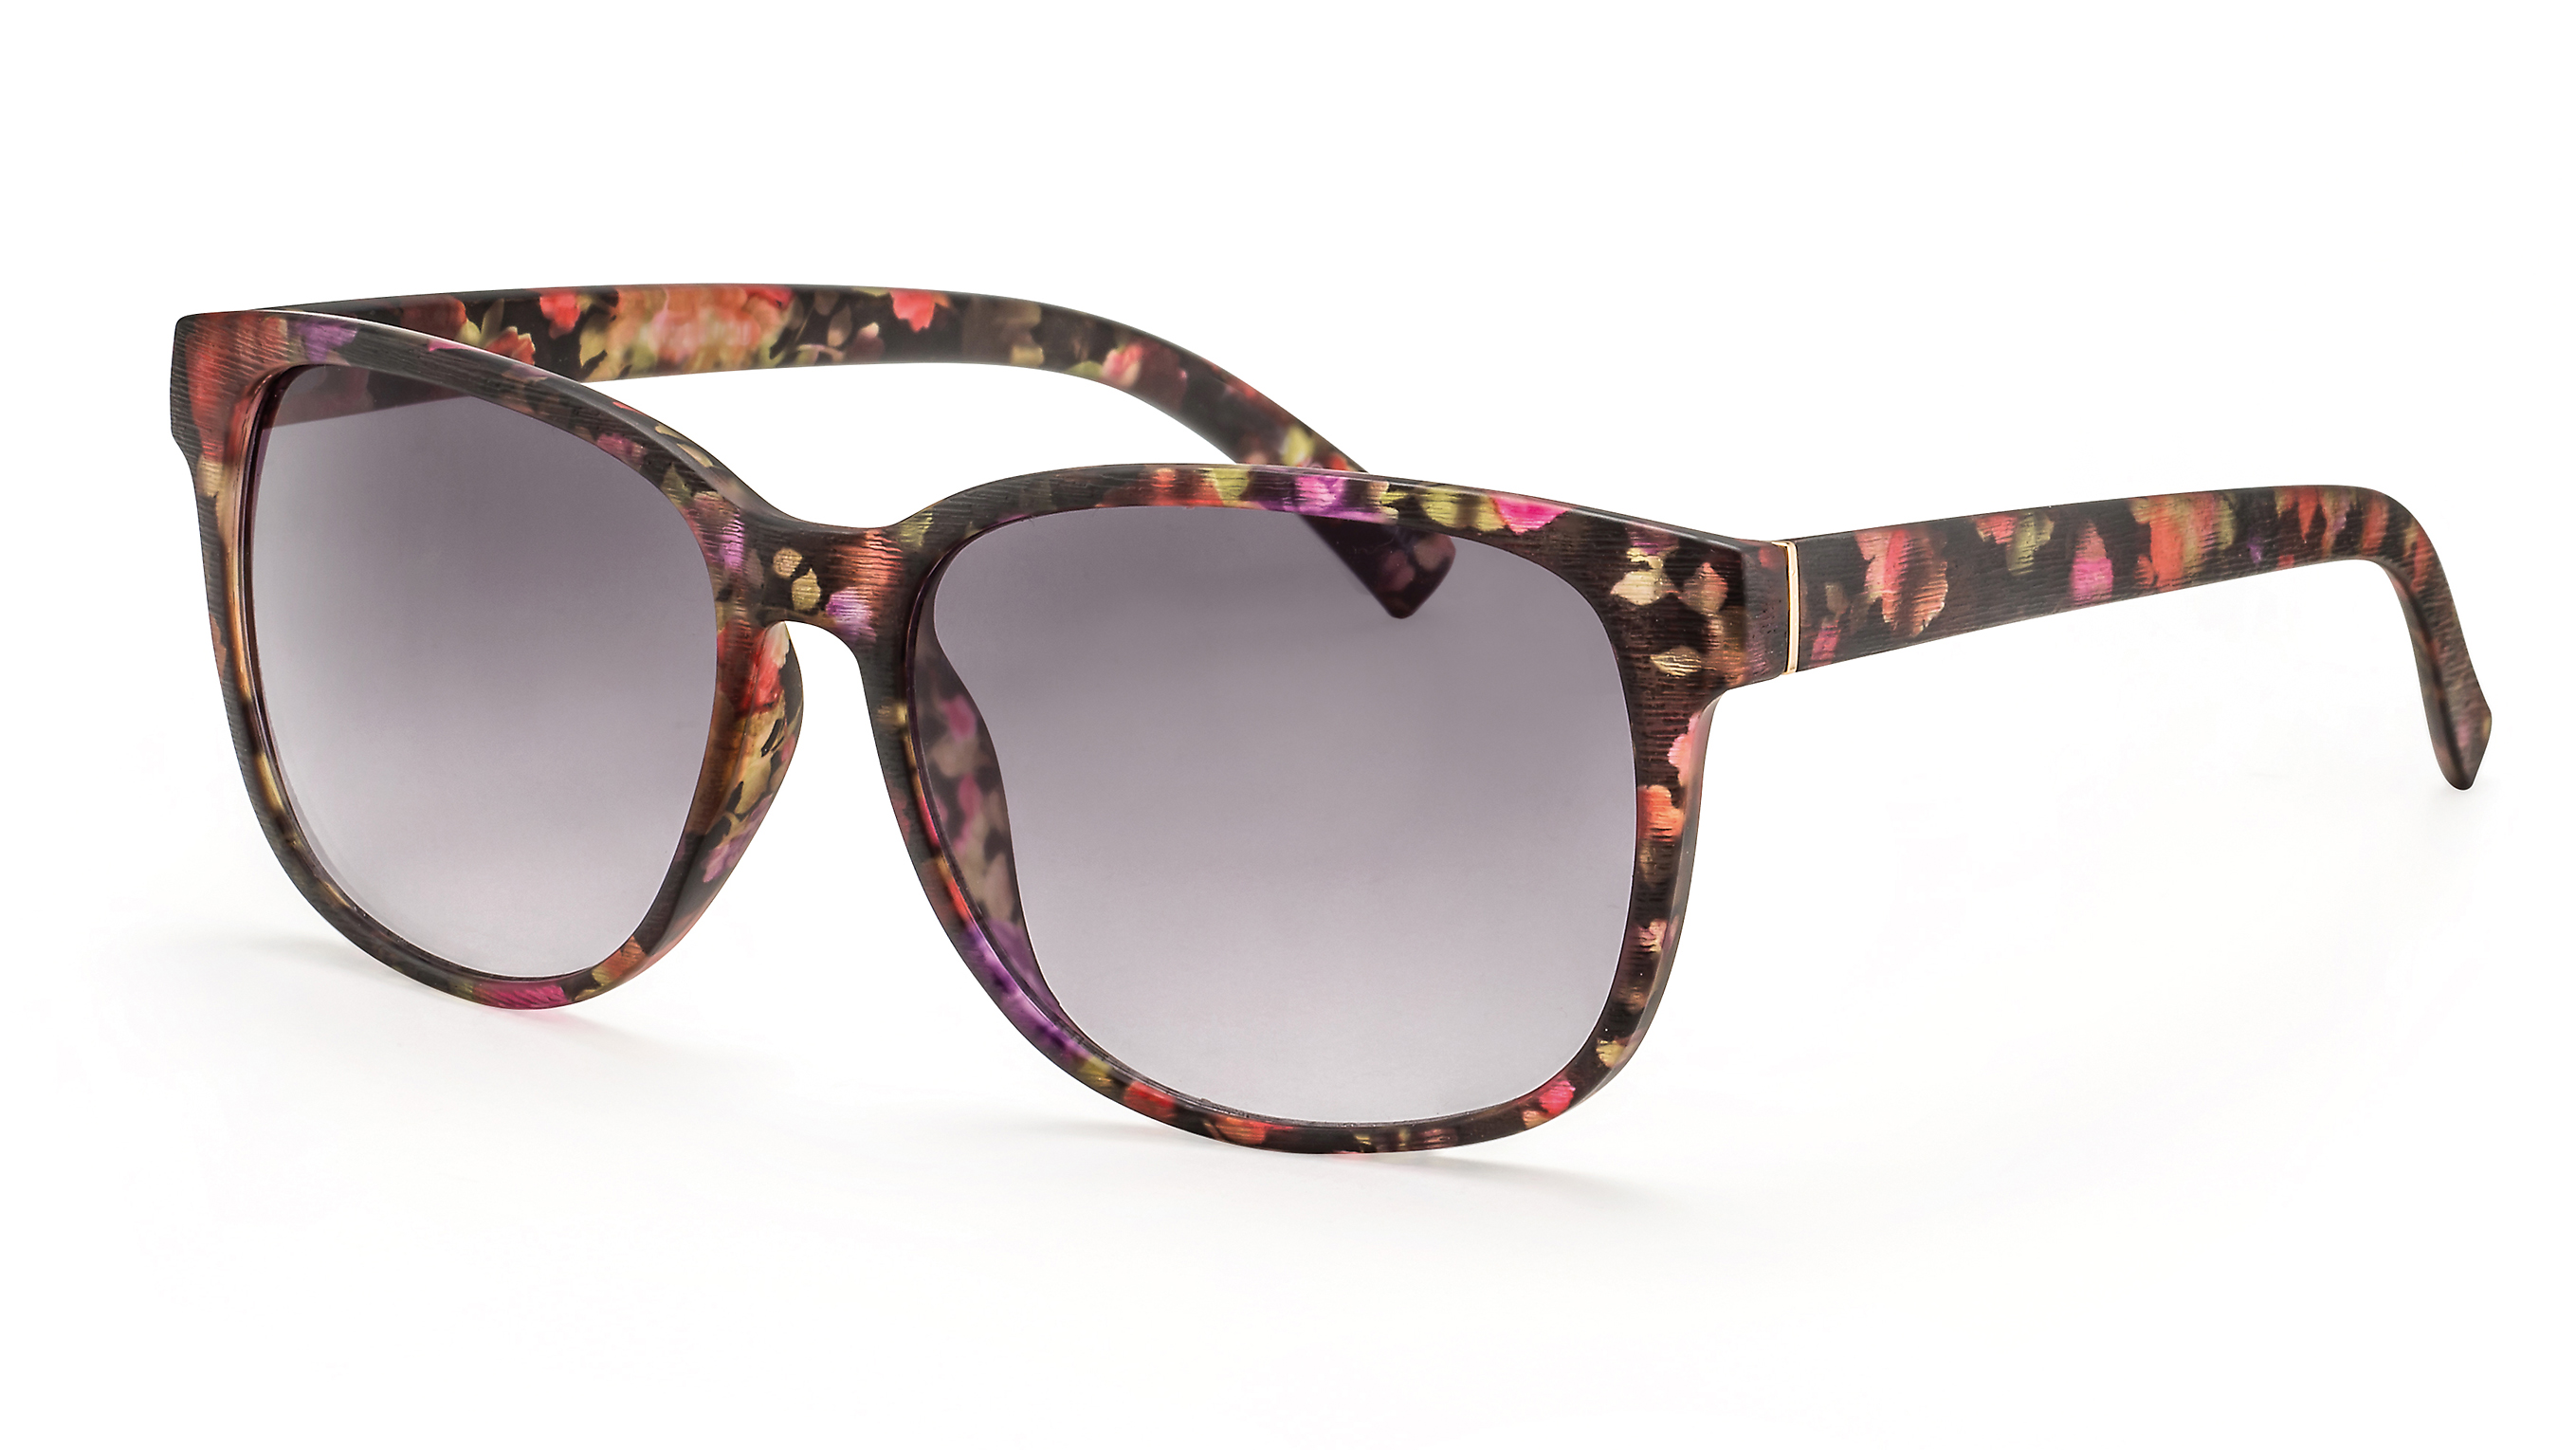 Main view sunglasses 3024908